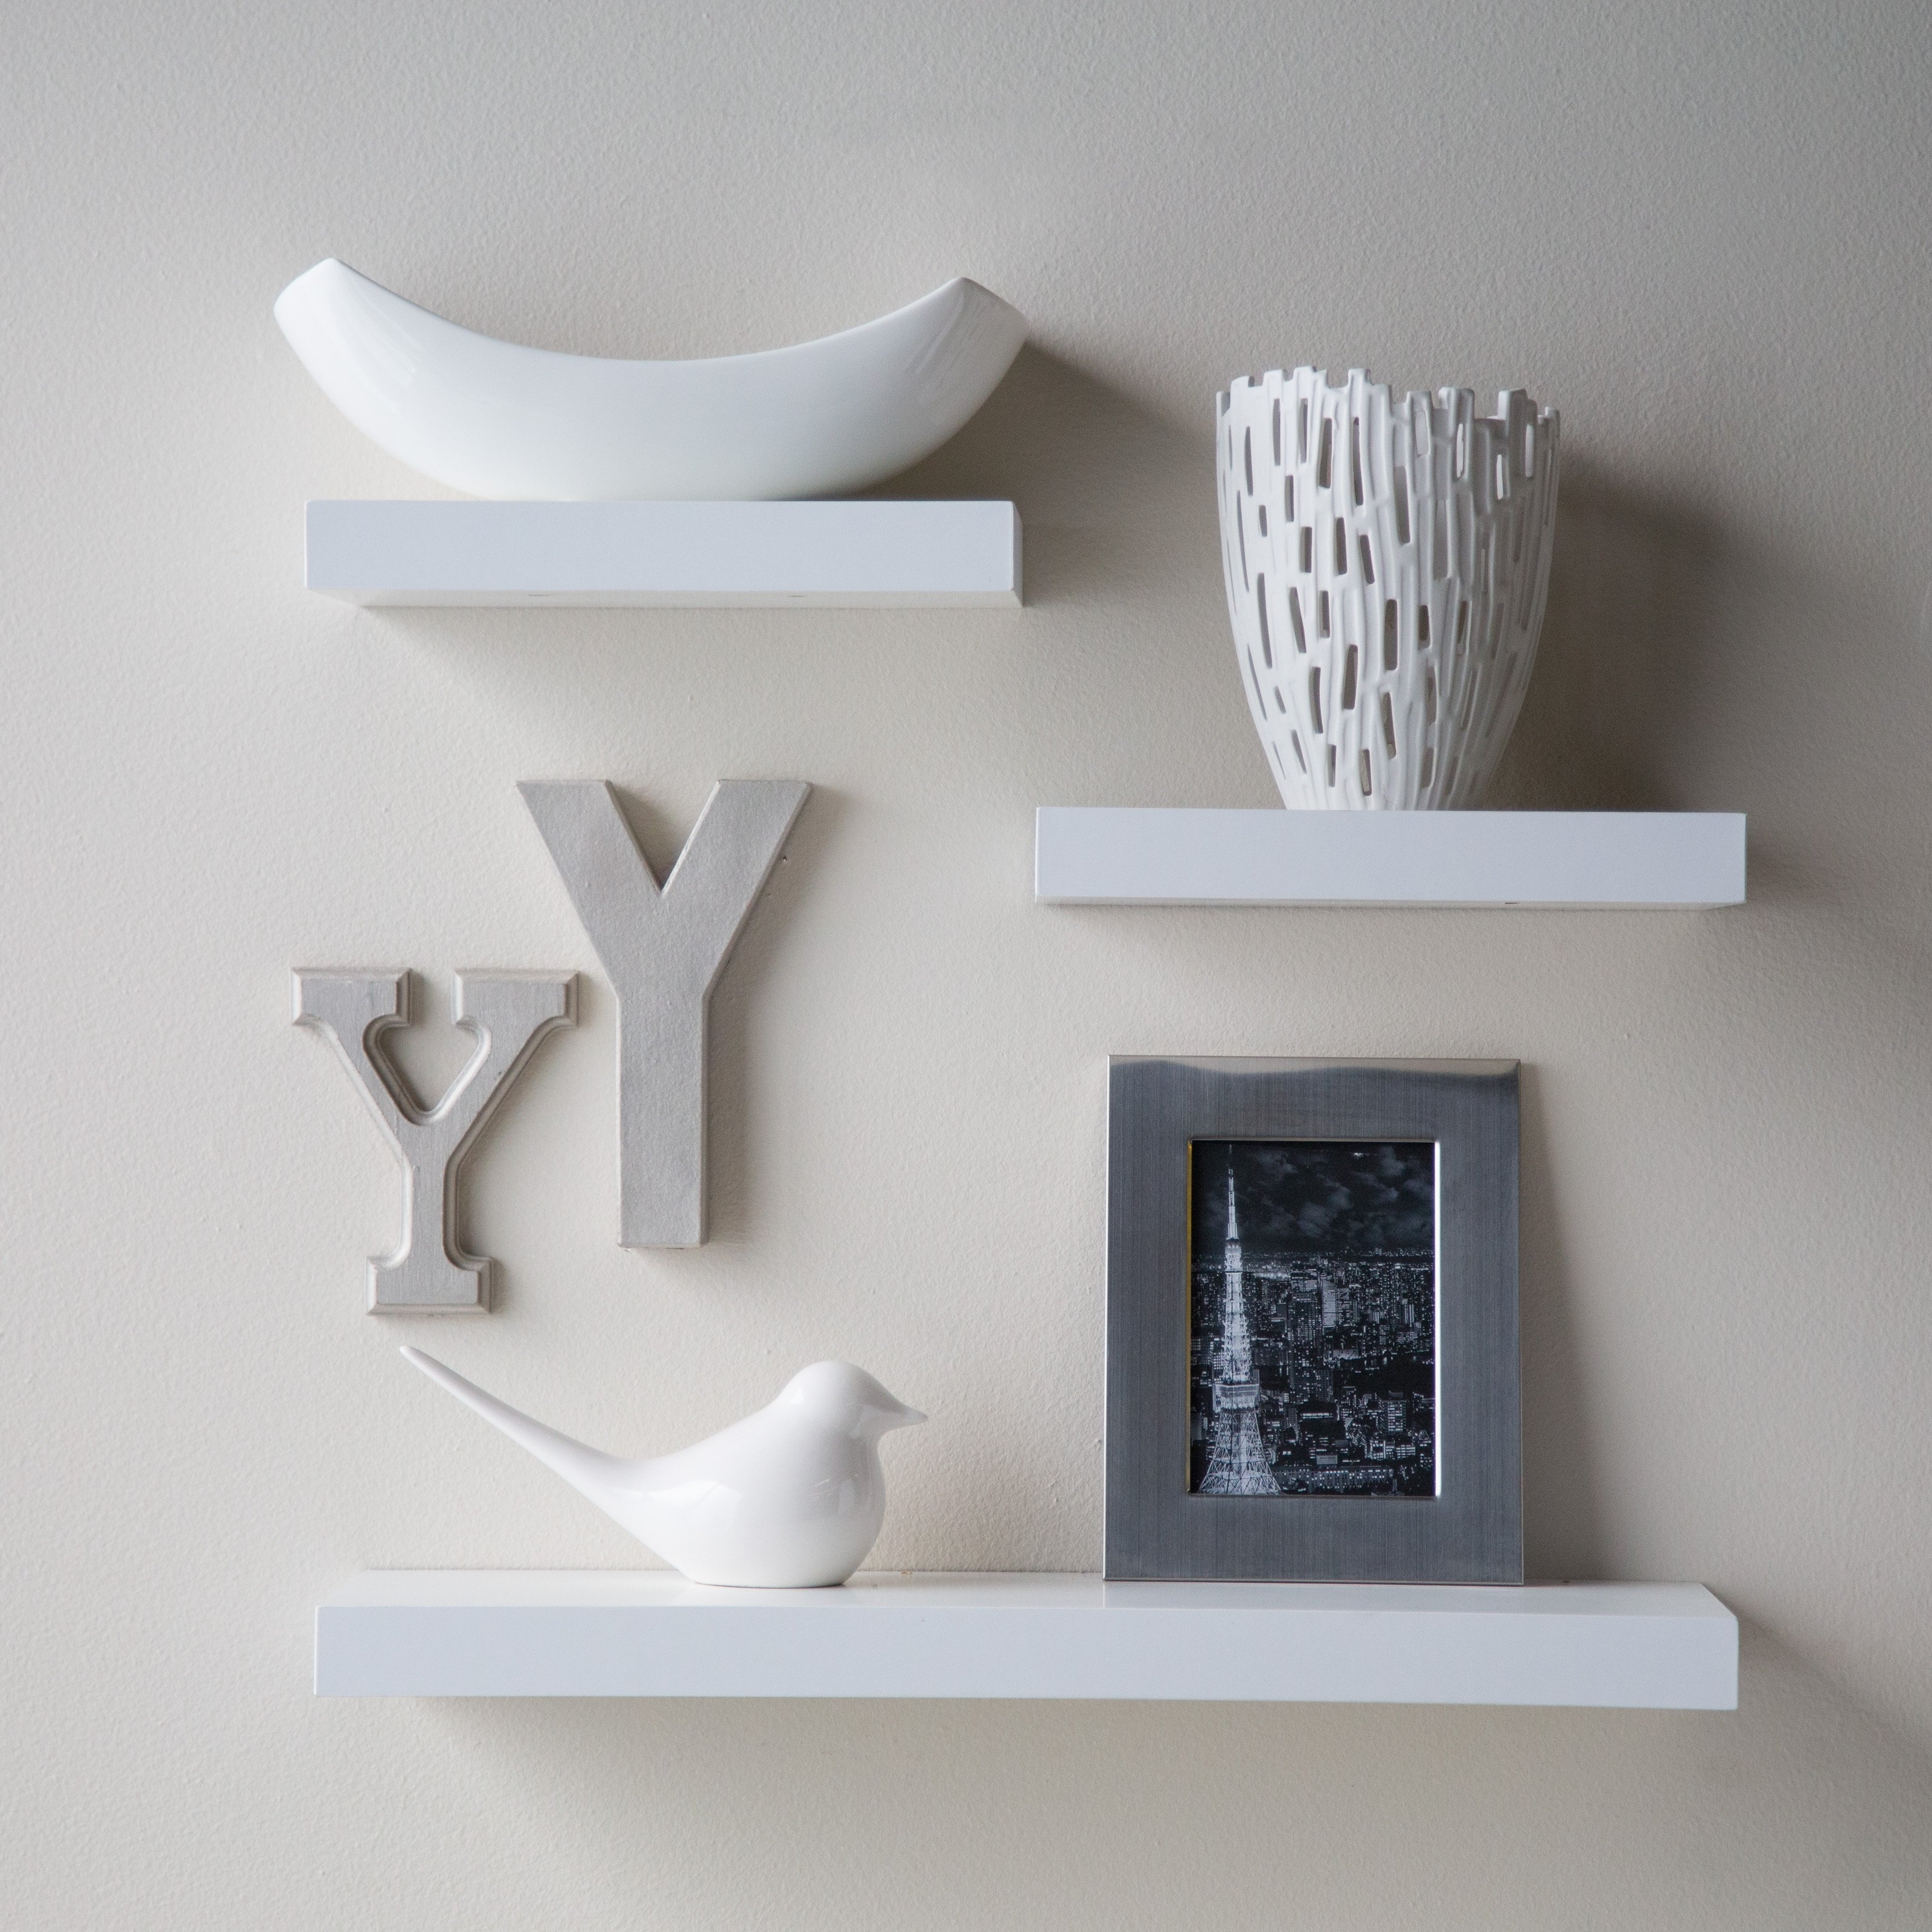 Fullsize Of Floating White Wall Shelves